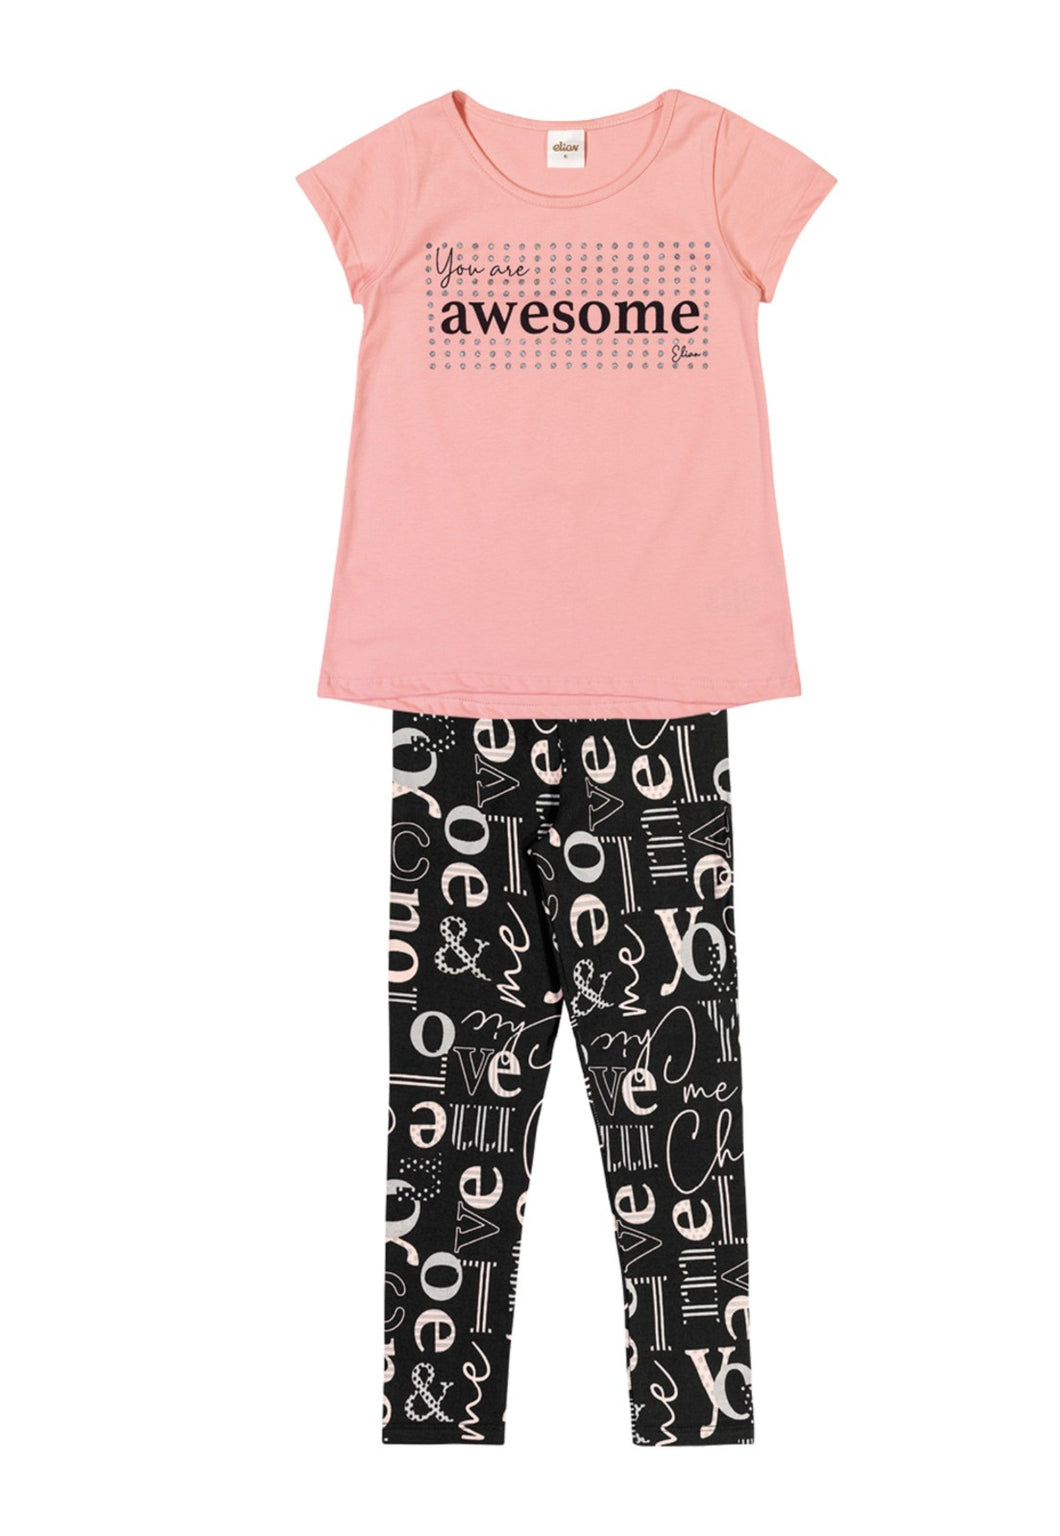 Conjunto Infantil Elian Awesome Rosa 251320RS